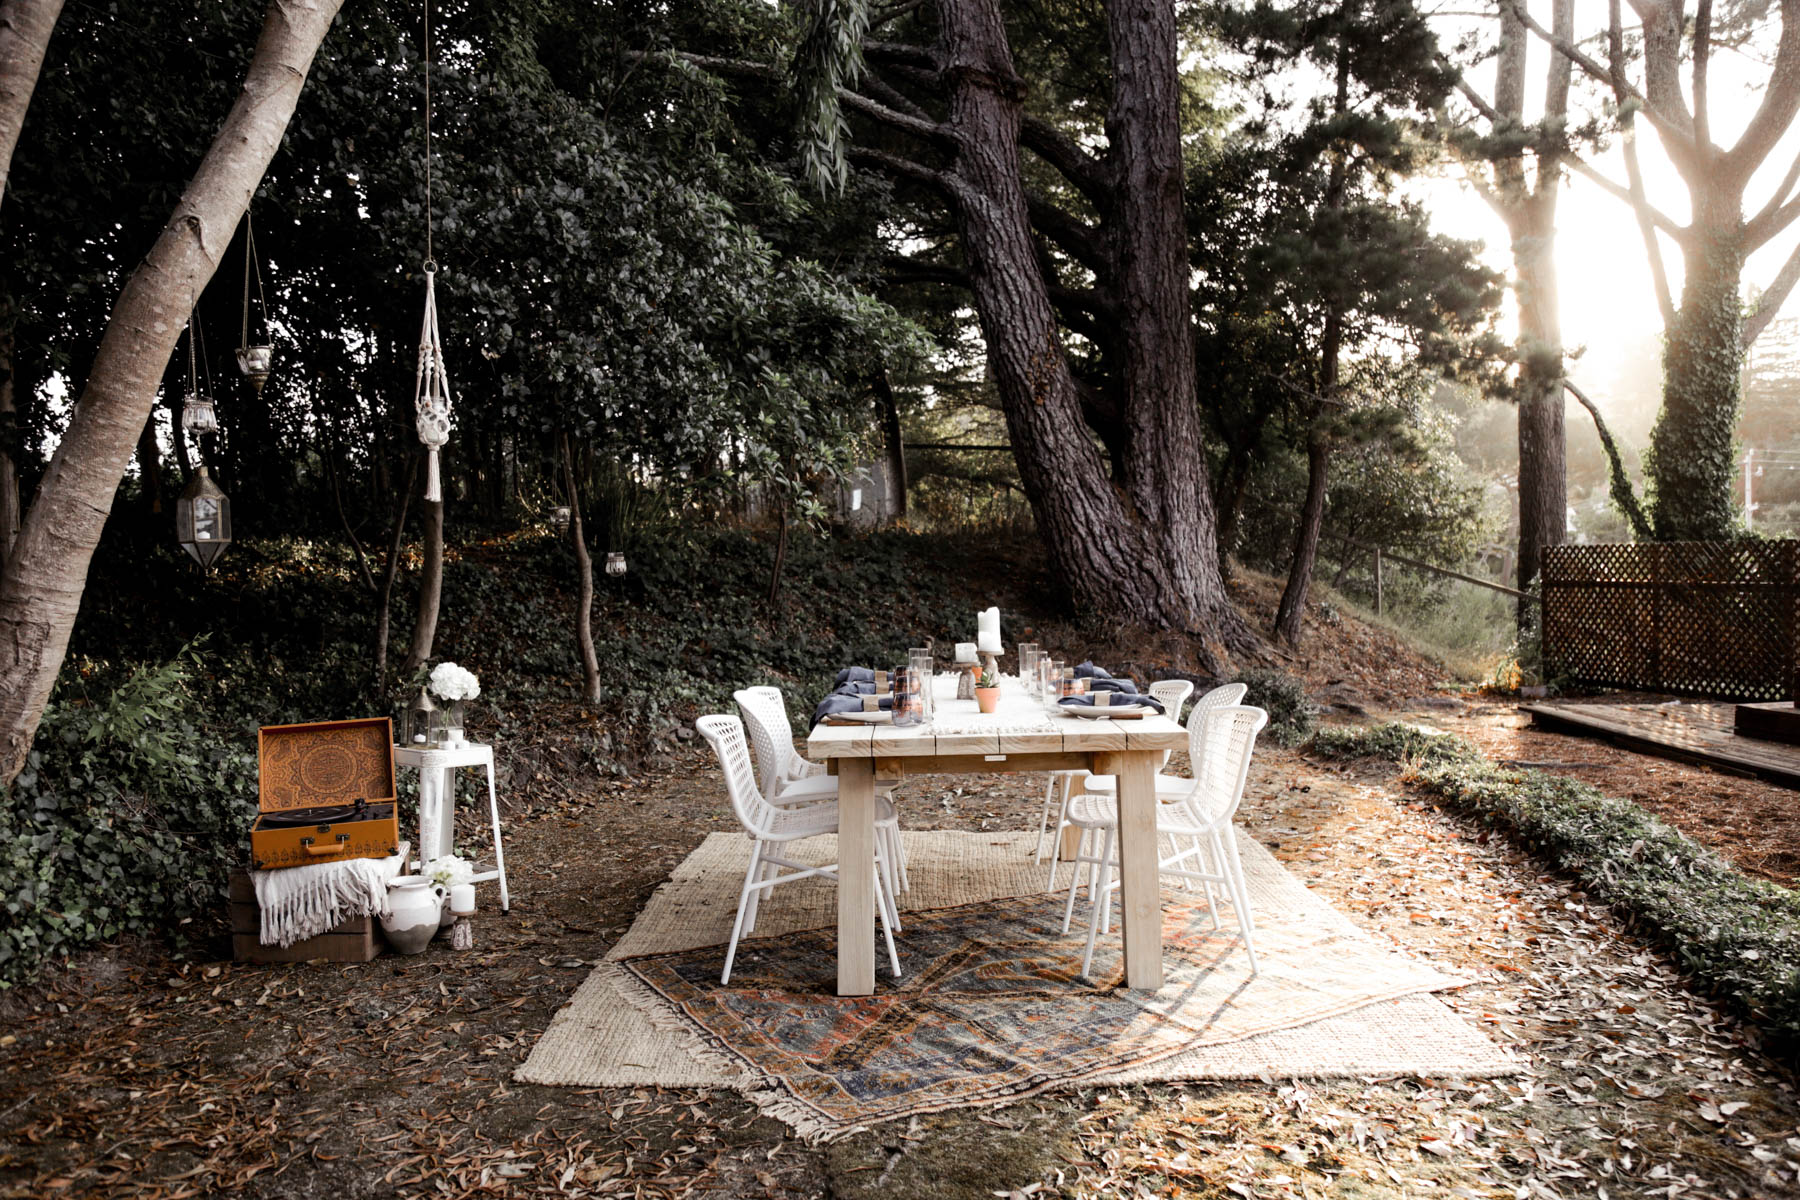 bohemian outdoor dining area with Article table and Urban Outfitters rug